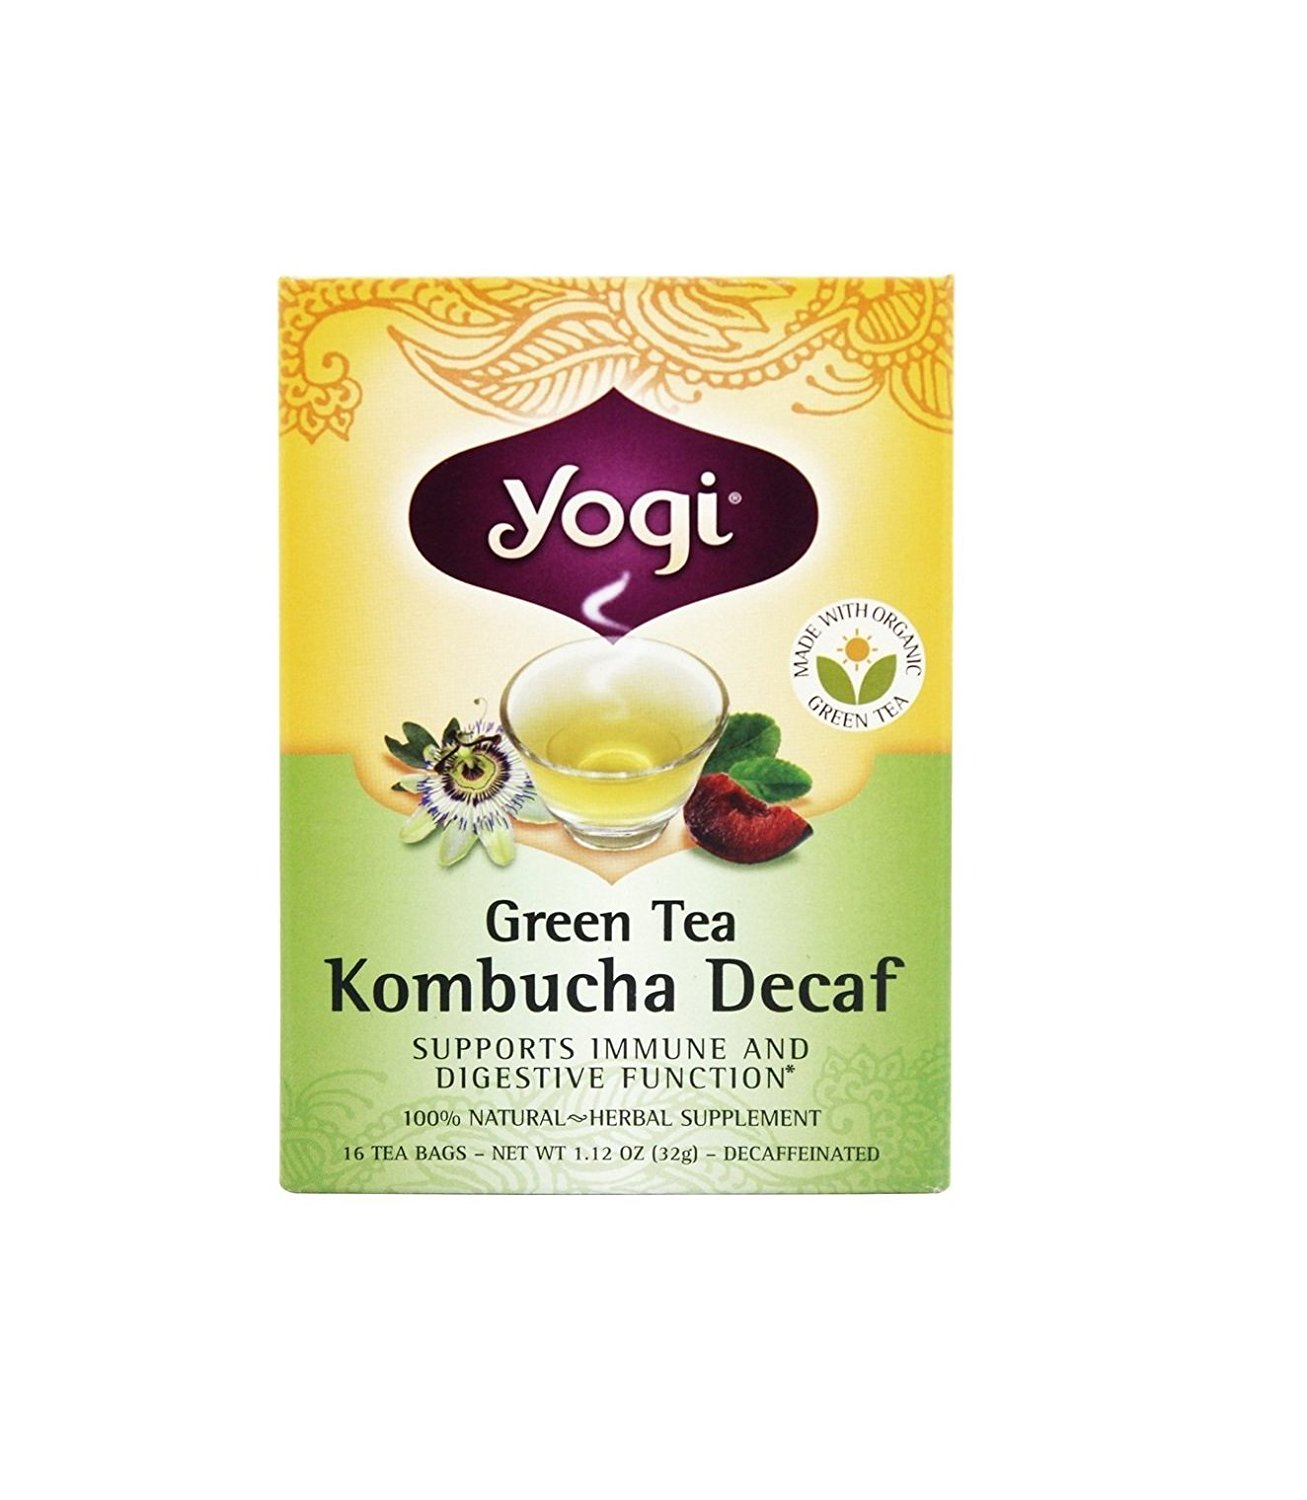 Yogi Kombucha Decaf Green Tea 16 bags